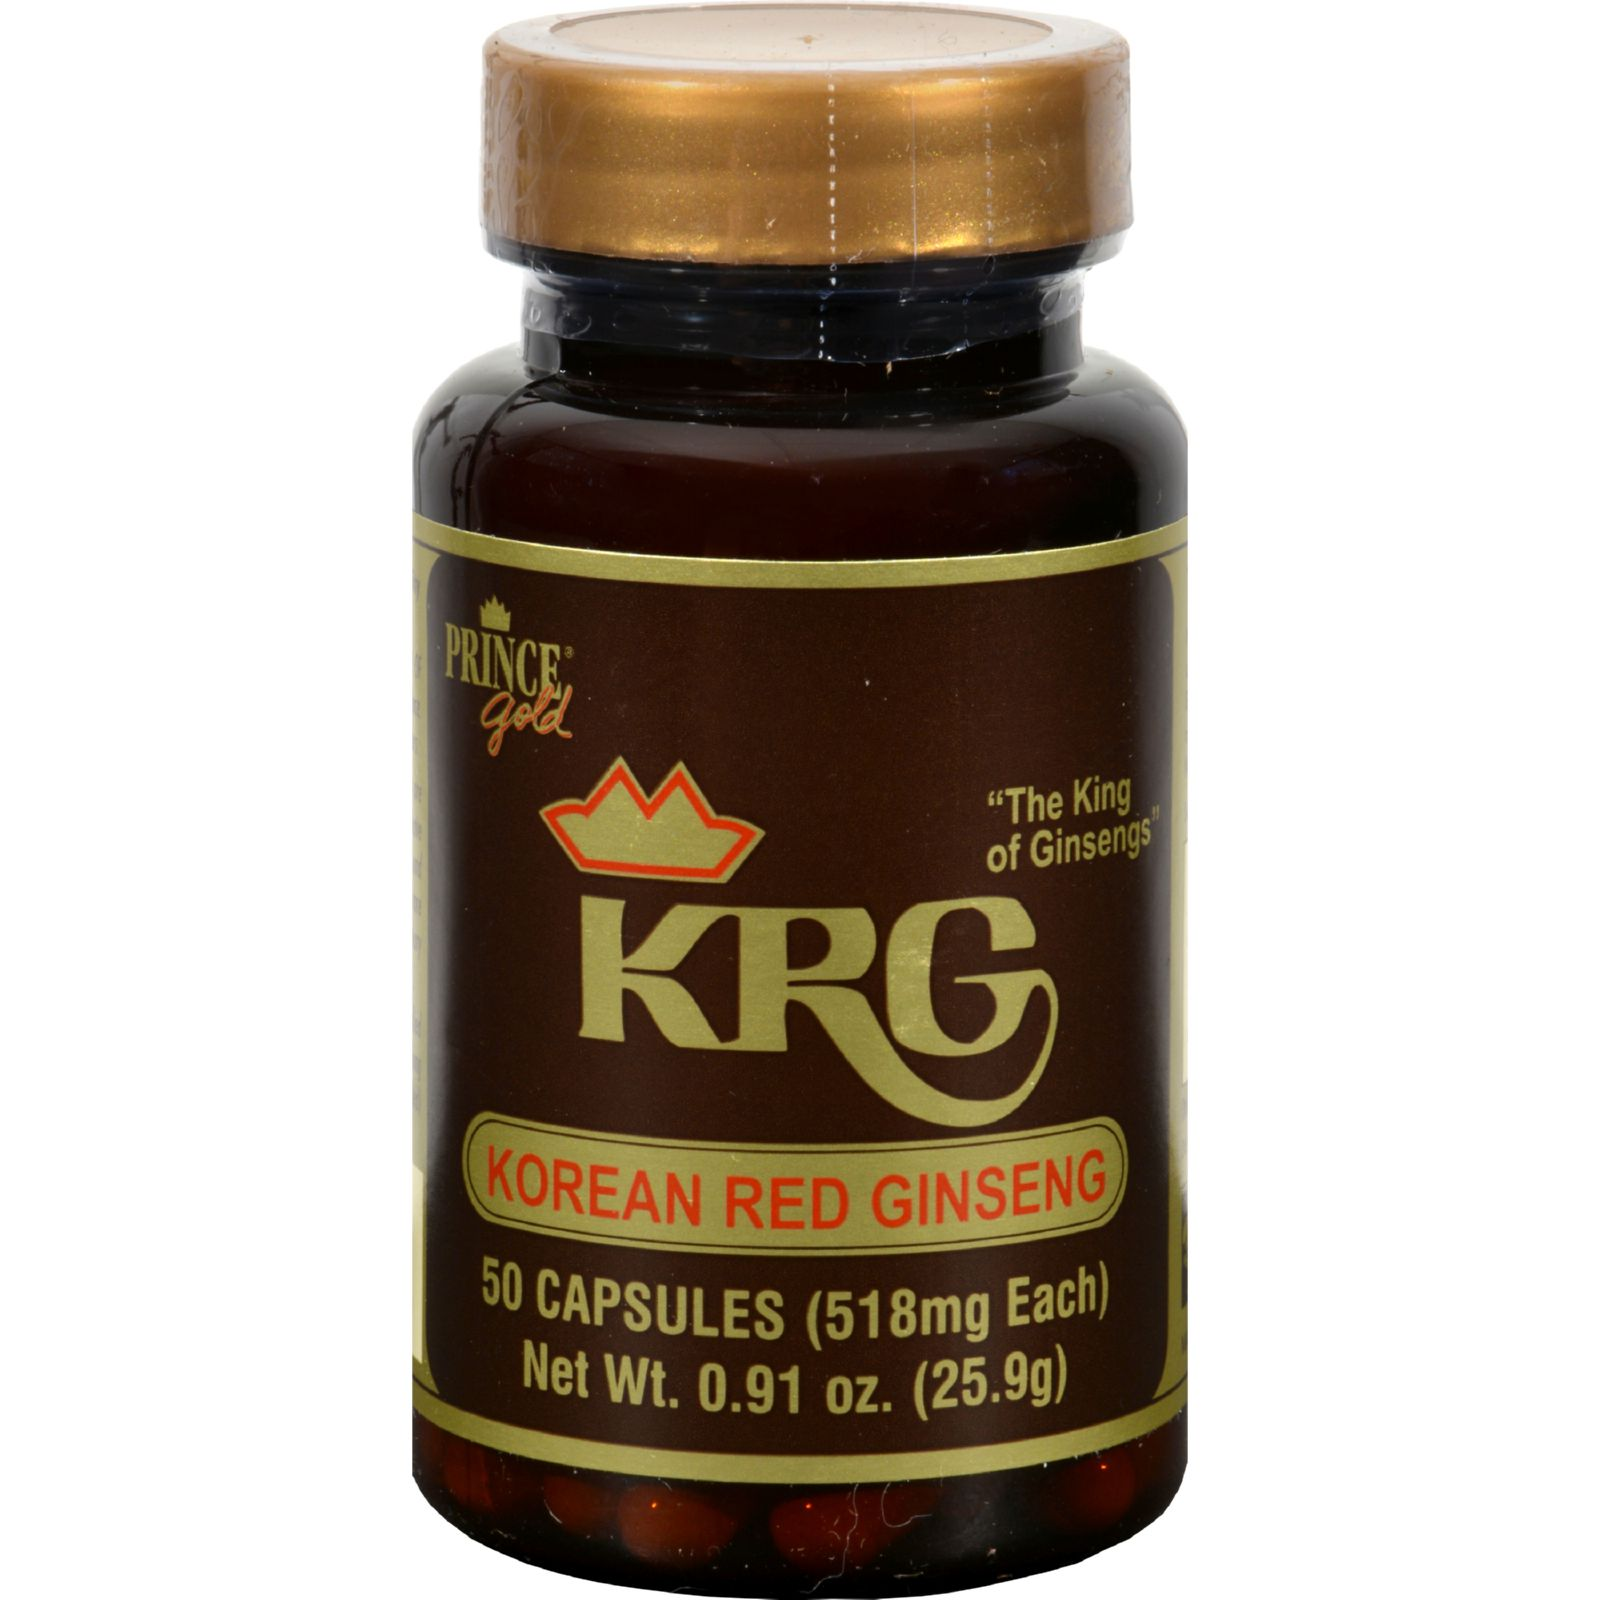 Prince Gold KRG Korean Red Ginseng Capsules - 50 CT